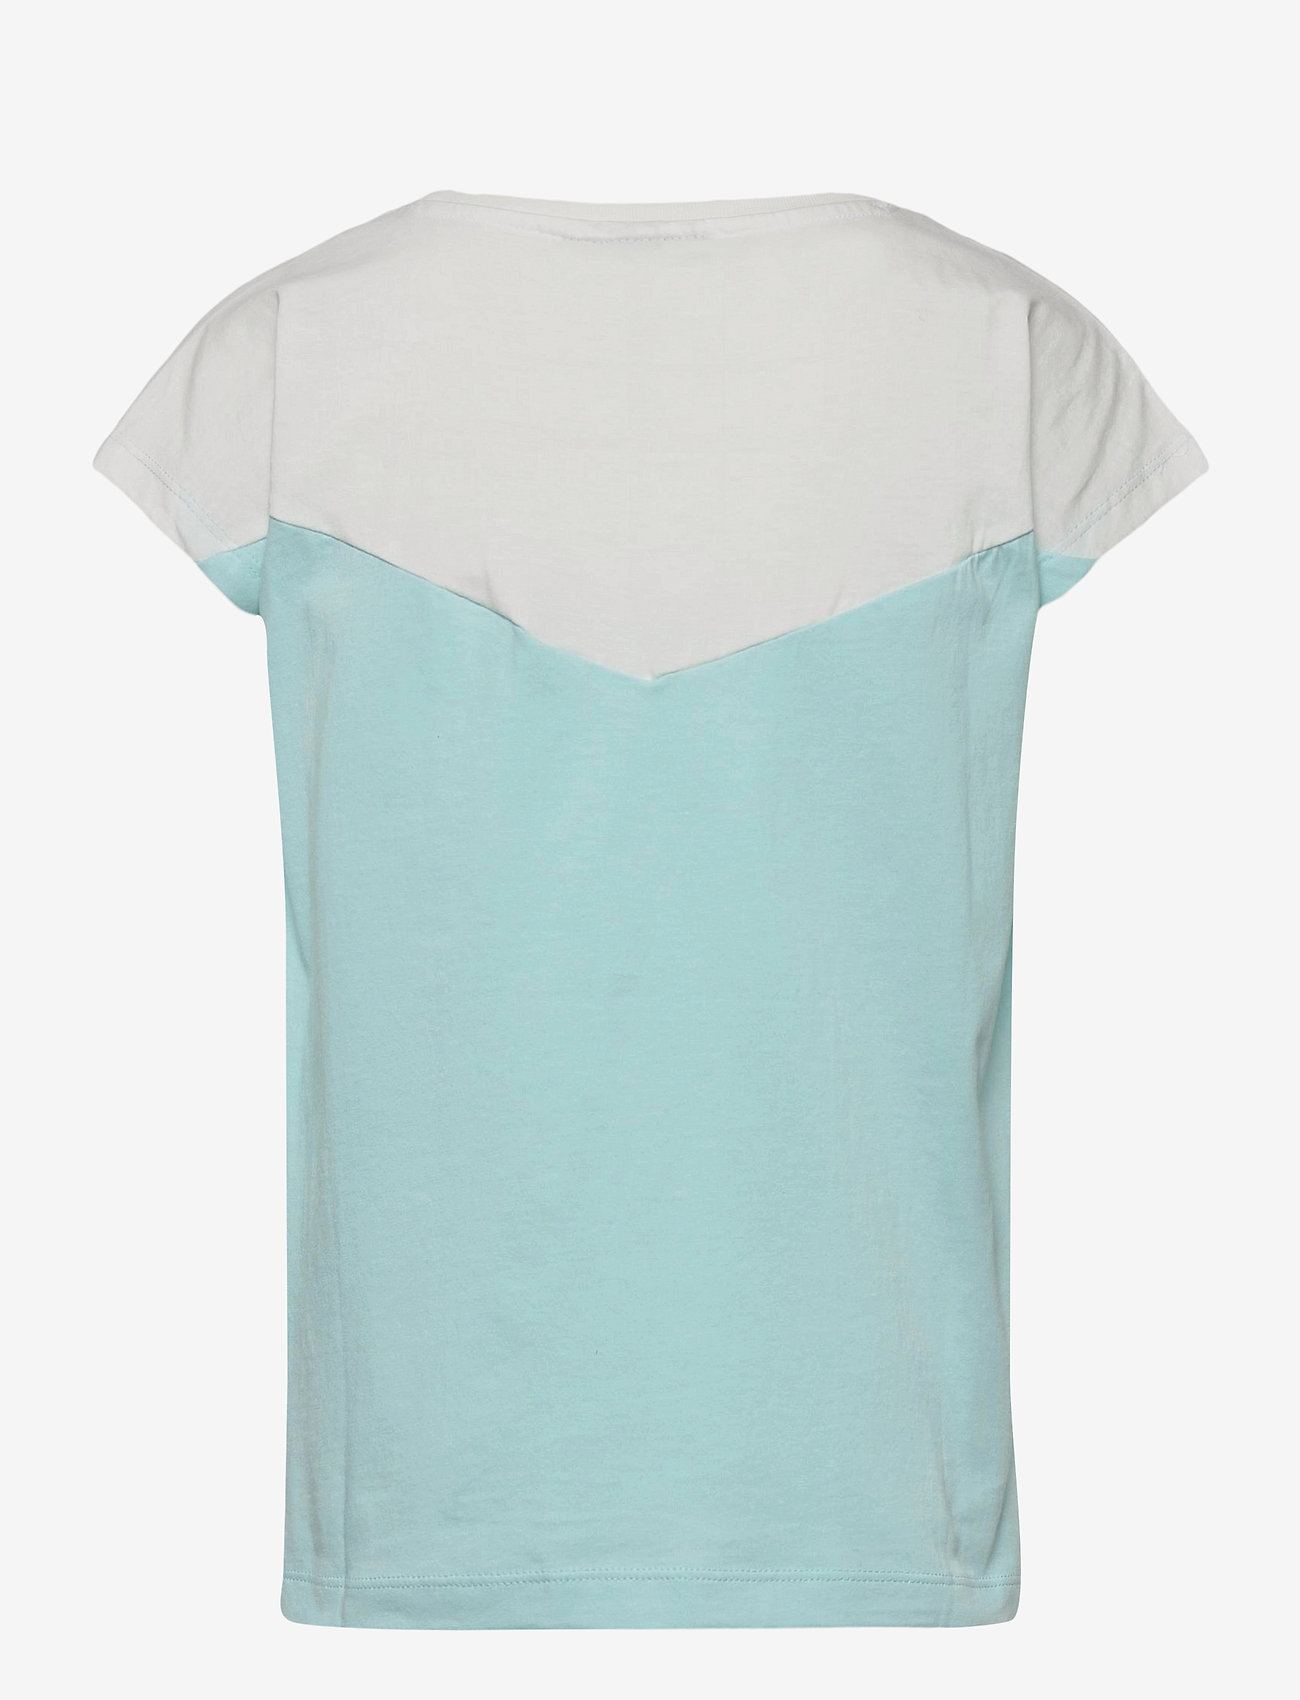 Hummel - hmlCIETE T-SHIRT S/S - short-sleeved - blue tint - 1